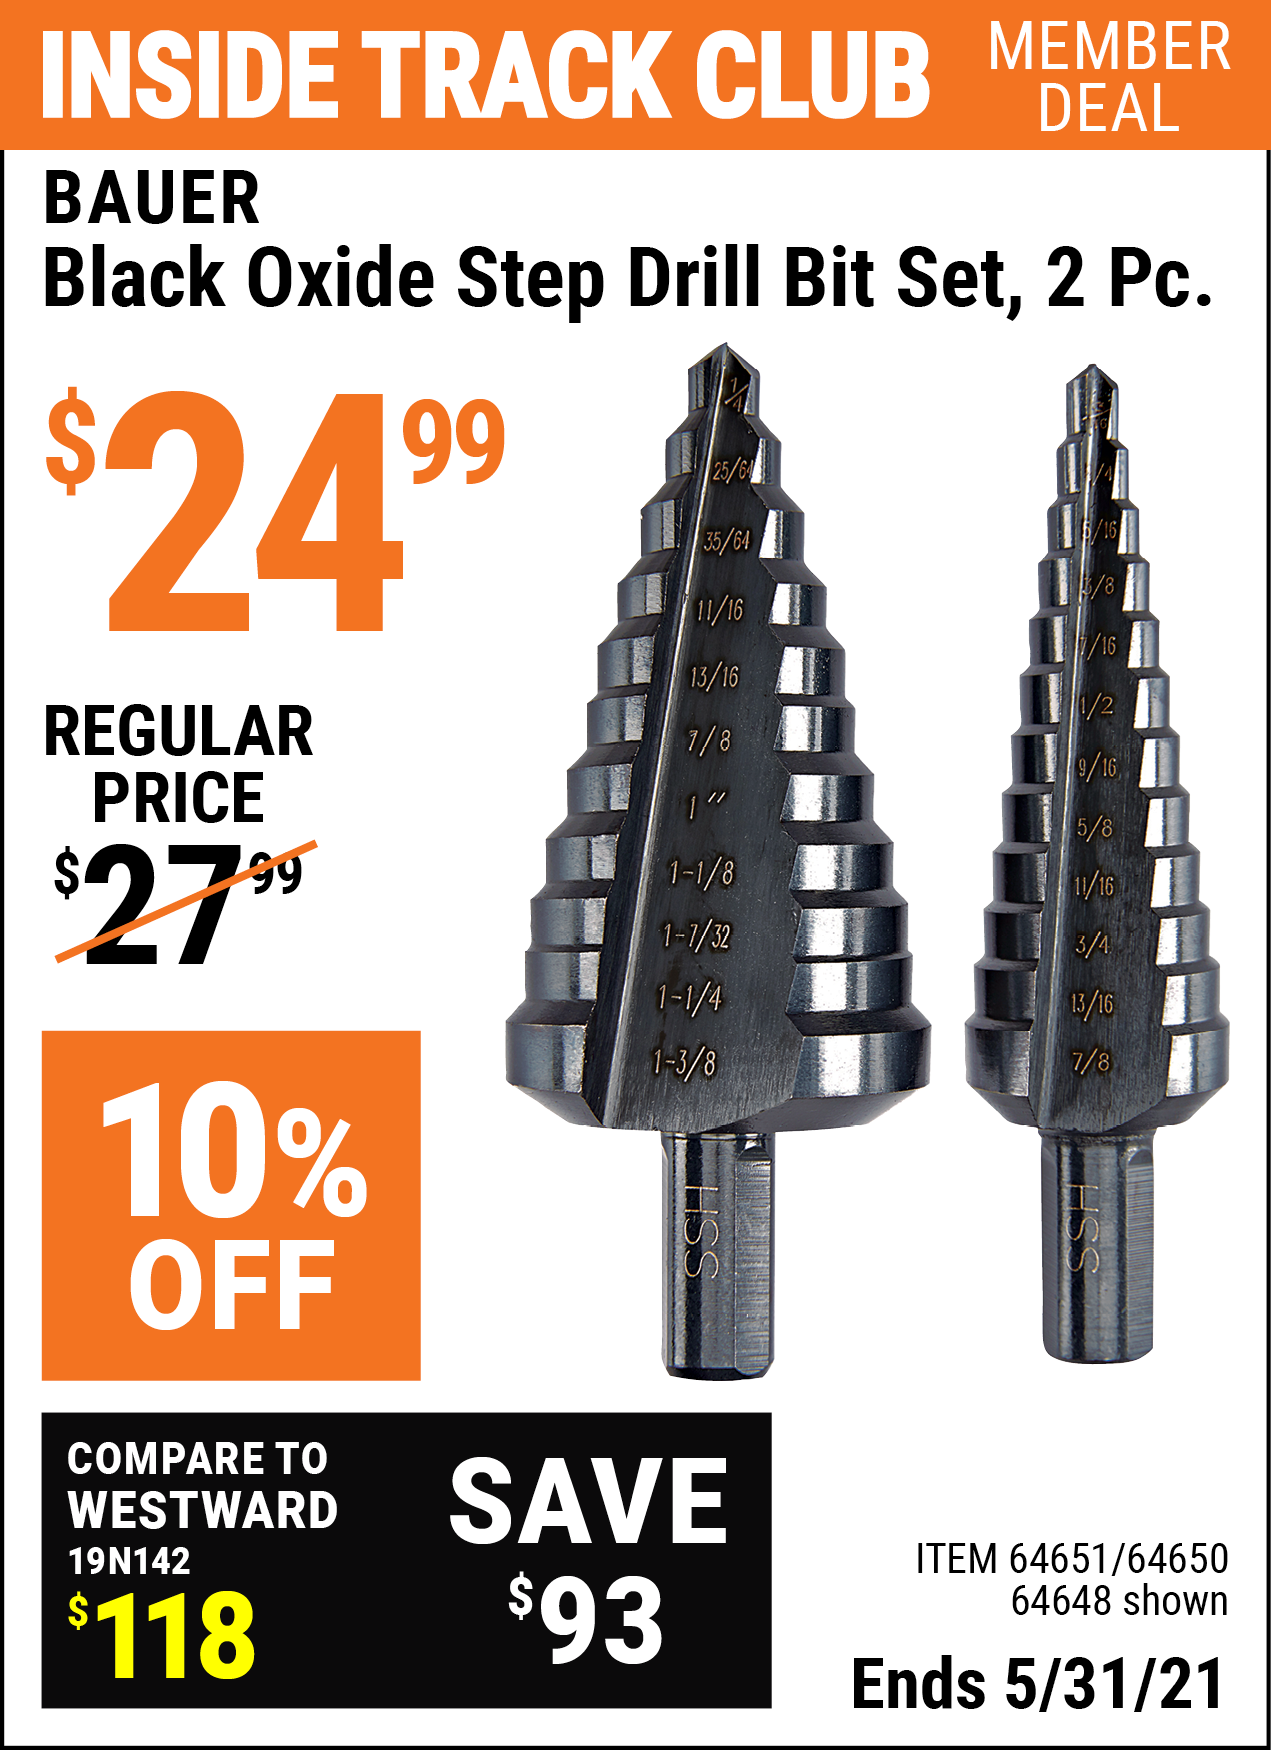 Inside Track Club members can buy the BAUER Black Oxide Step Drill Drill Bit Set 2 Pc. (Item 64648/64651/64650) for $24.99, valid through 5/31/2021.